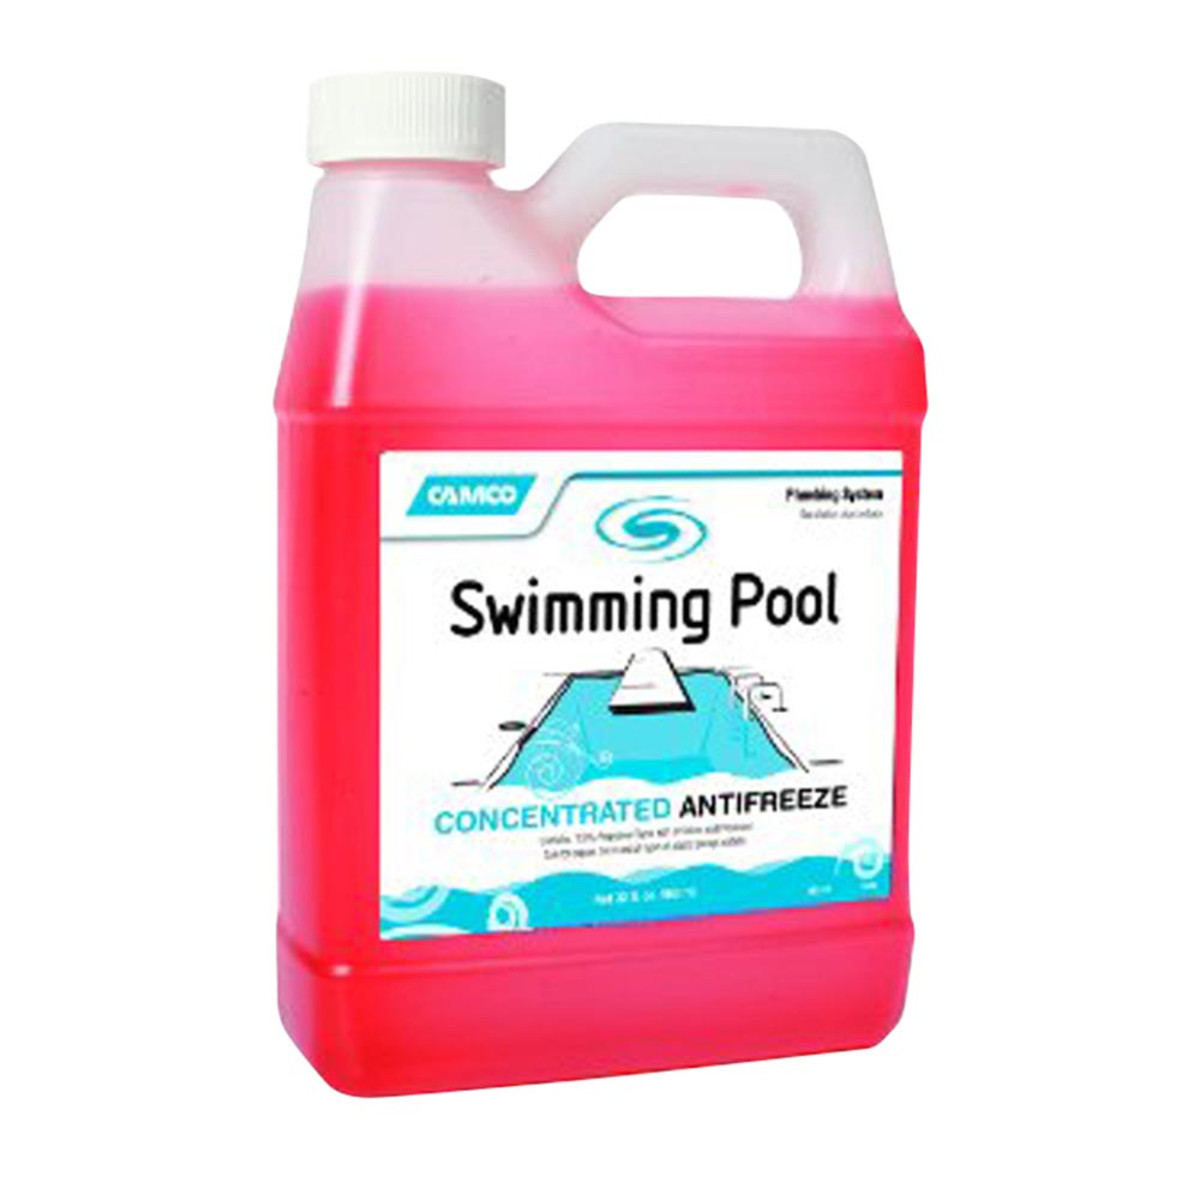 Camco Concentrated Swimming Pool Antifreeze Pool Closing